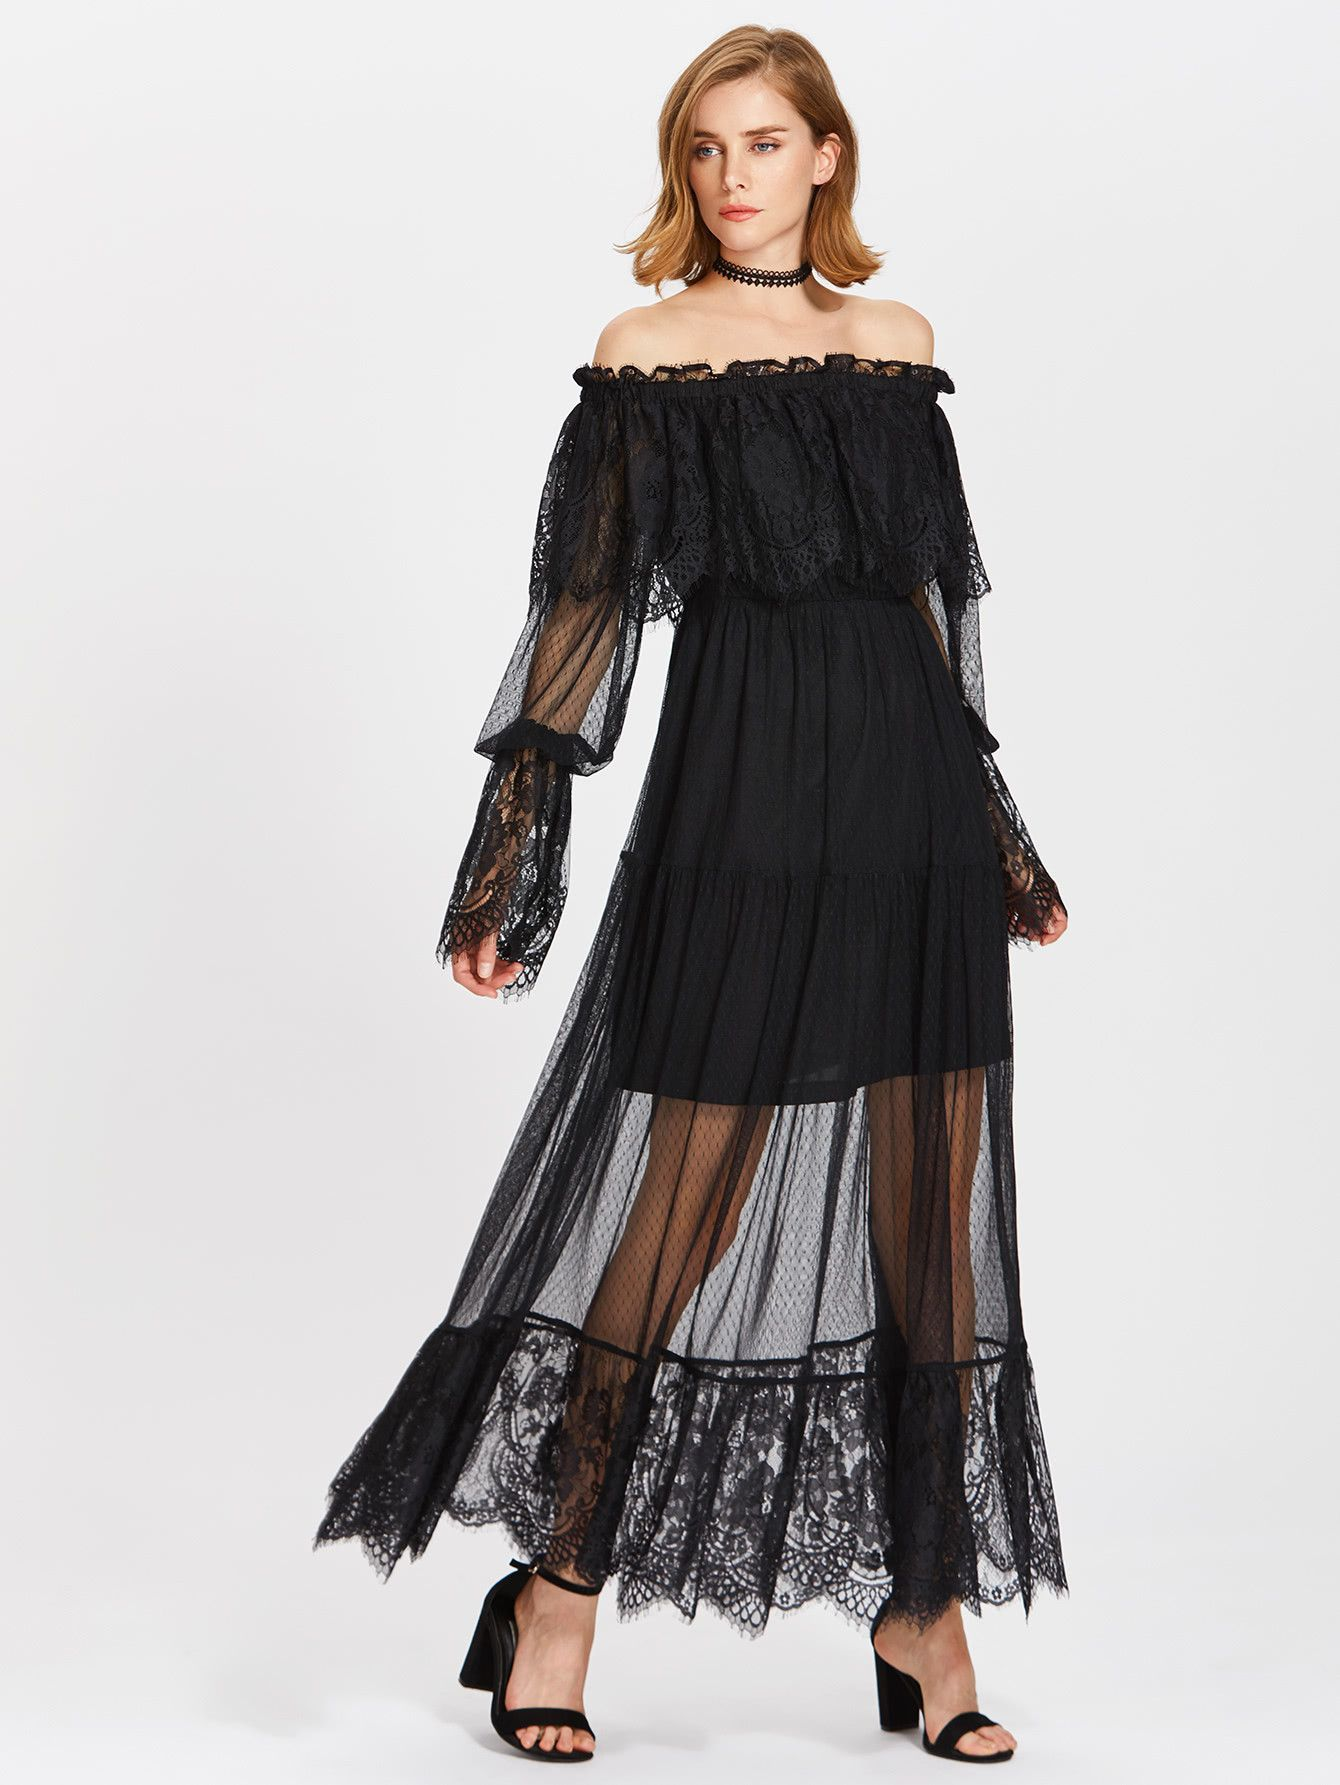 6152b6dd7273 Black Lace Frill Off Shoulder Overlay Tiered Maxi Dress in 2019 ...